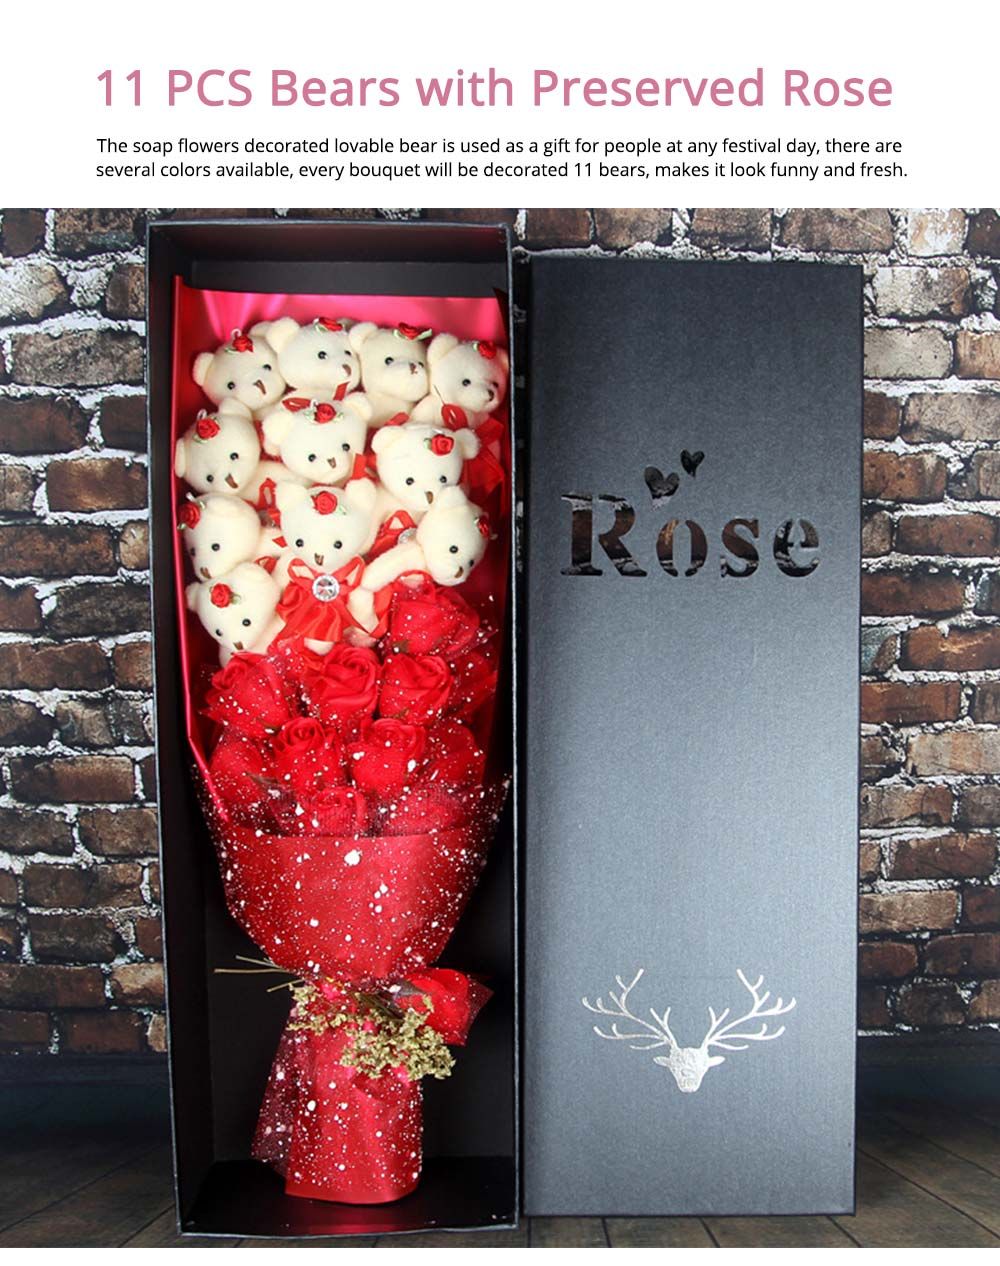 Valentine's Day Mother's Day Gift Imitation Roses 11 PCS Bears with Preserved Rose for Girls, Girlfriend, Teachers, Mommy 0